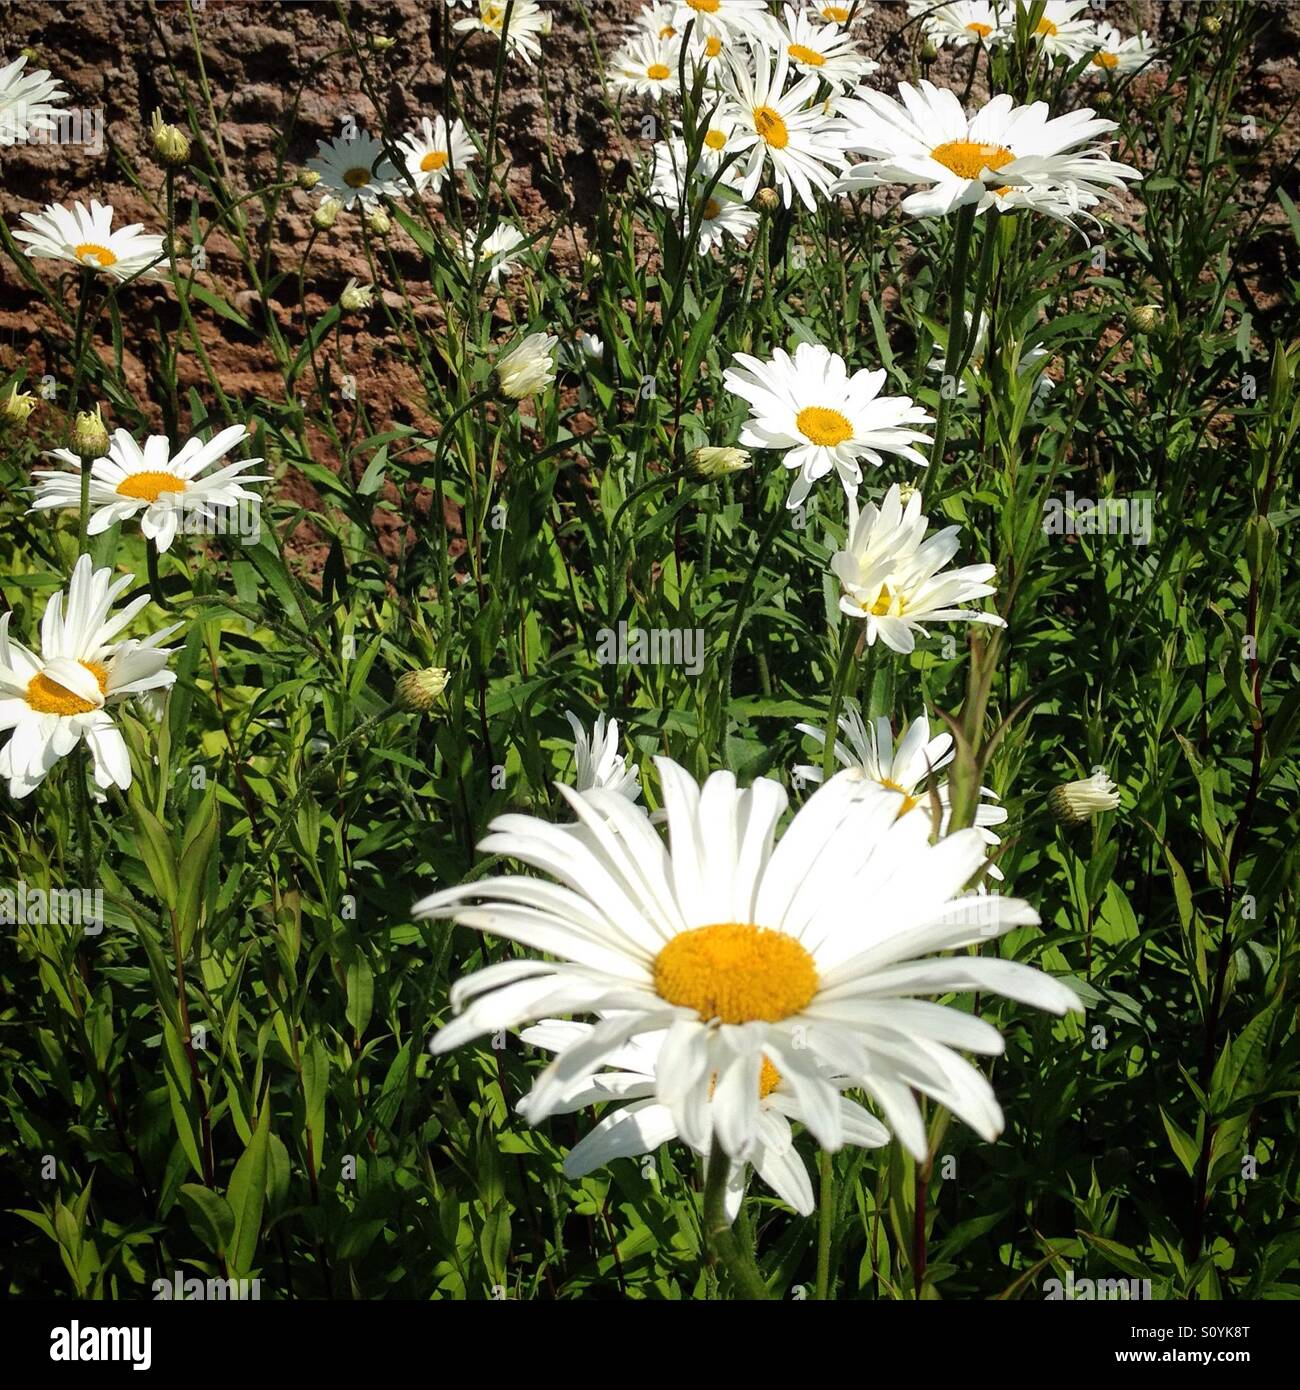 Large daisy stock photos large daisy stock images alamy large daisy type flowers in a summer garden stock image izmirmasajfo Image collections